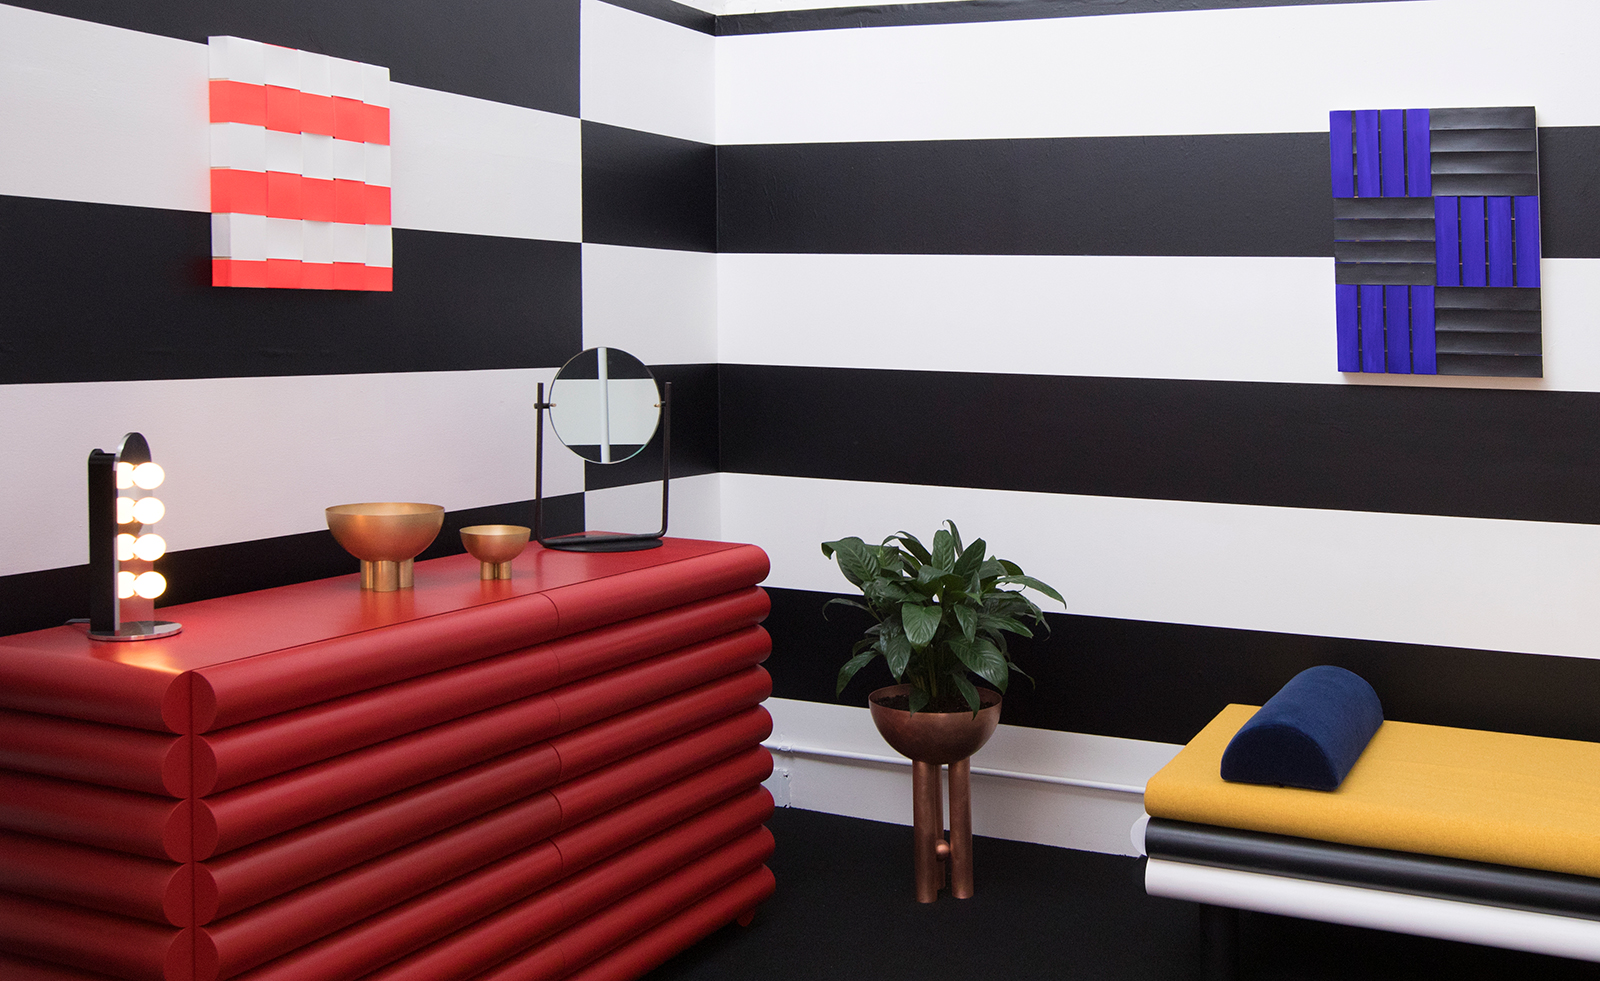 A Memphis Hotel Suite Opens At New York Design Week 2018